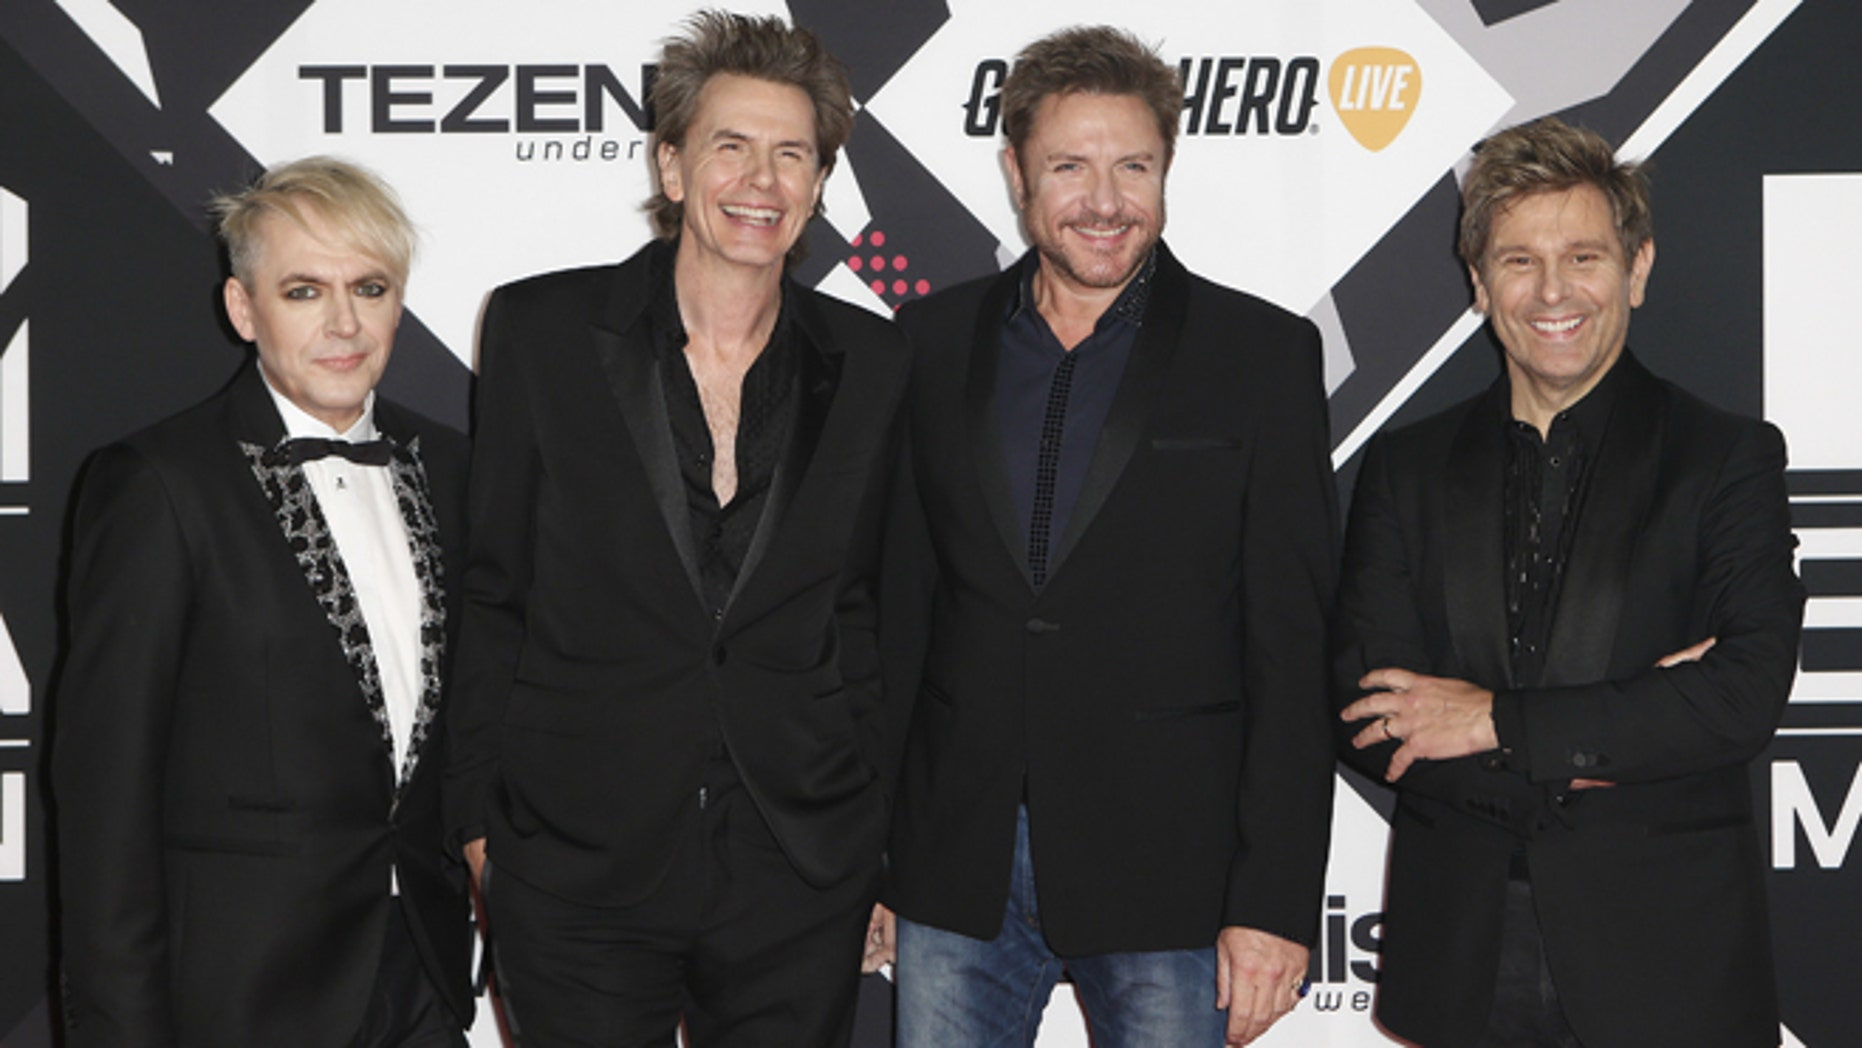 October 25, 2015. Duran Duran pose on the red carpet during the MTV EMA awards at the Assago forum in Milan, Italy.